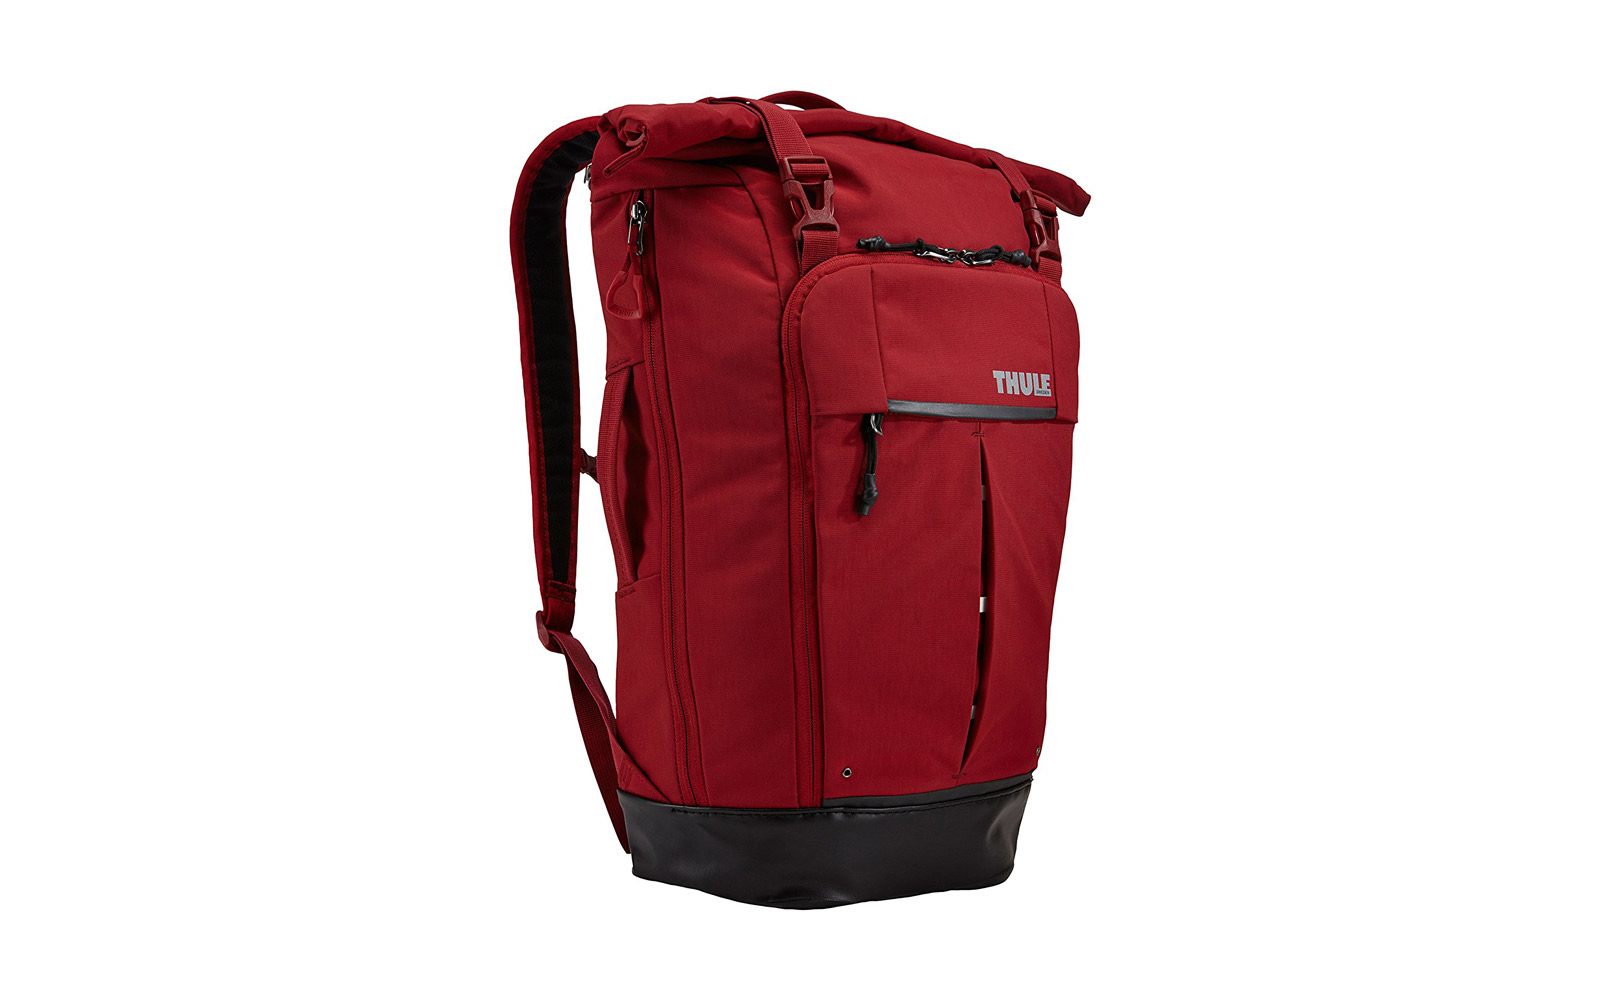 thule roll-top laptop backpack